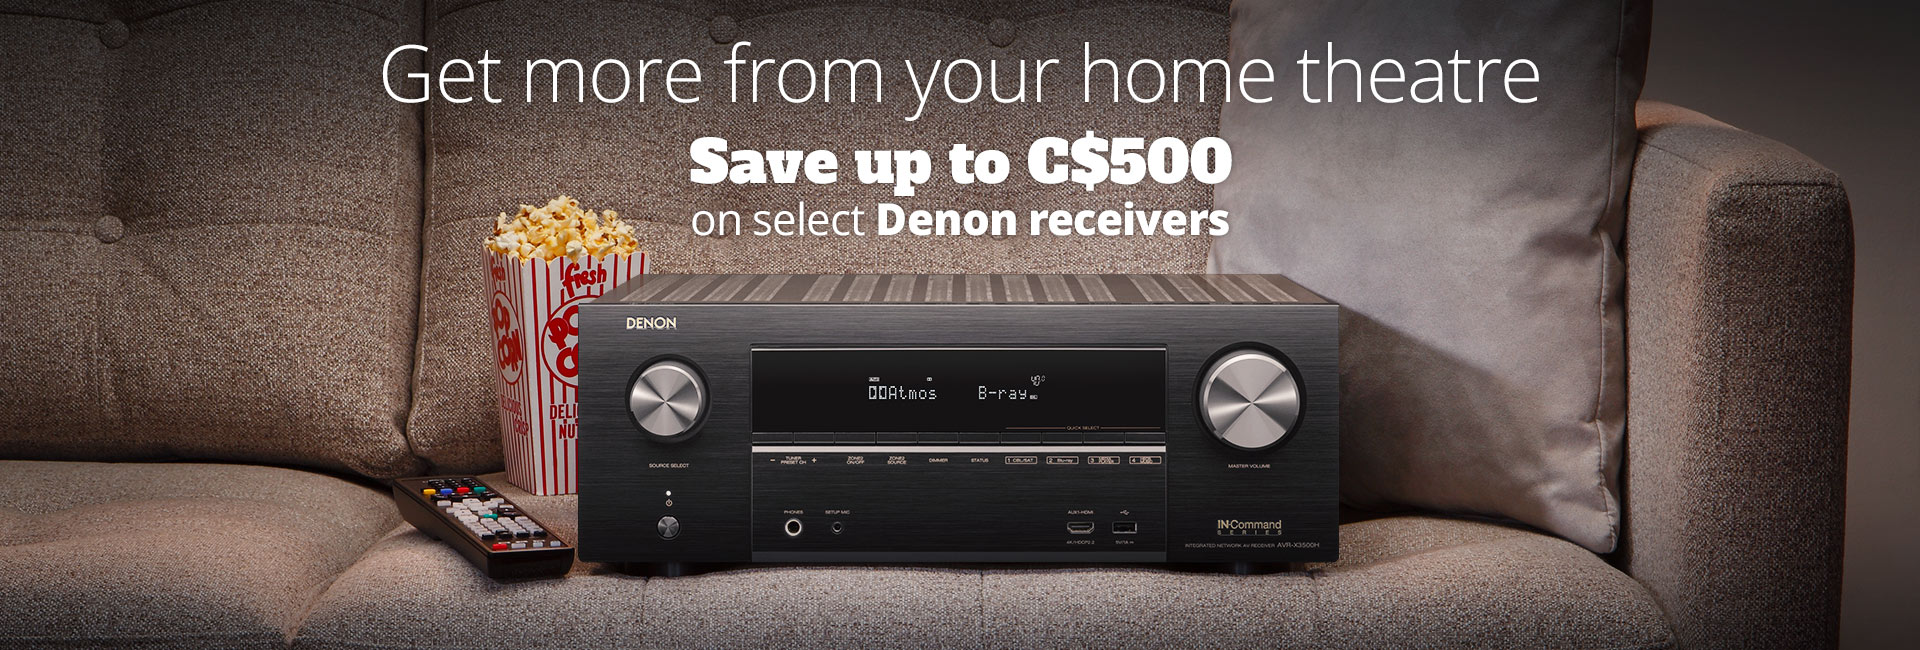 Save up to C$500 on select Denon receivers